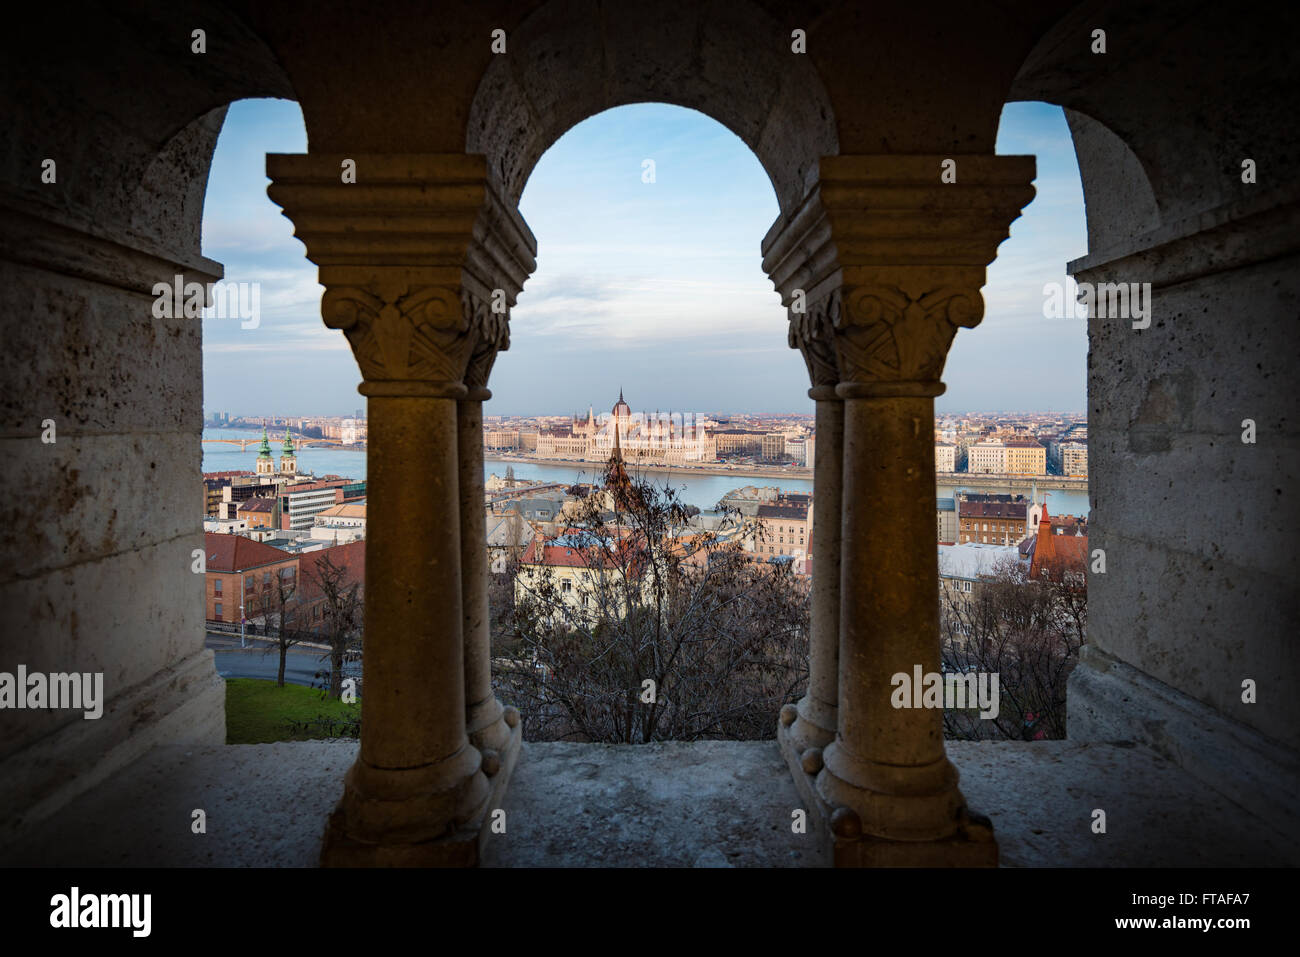 View on parliament building and Danube river from fisherman bastion on Buda hill. Budapest, Hungary, Europe travel. - Stock Image